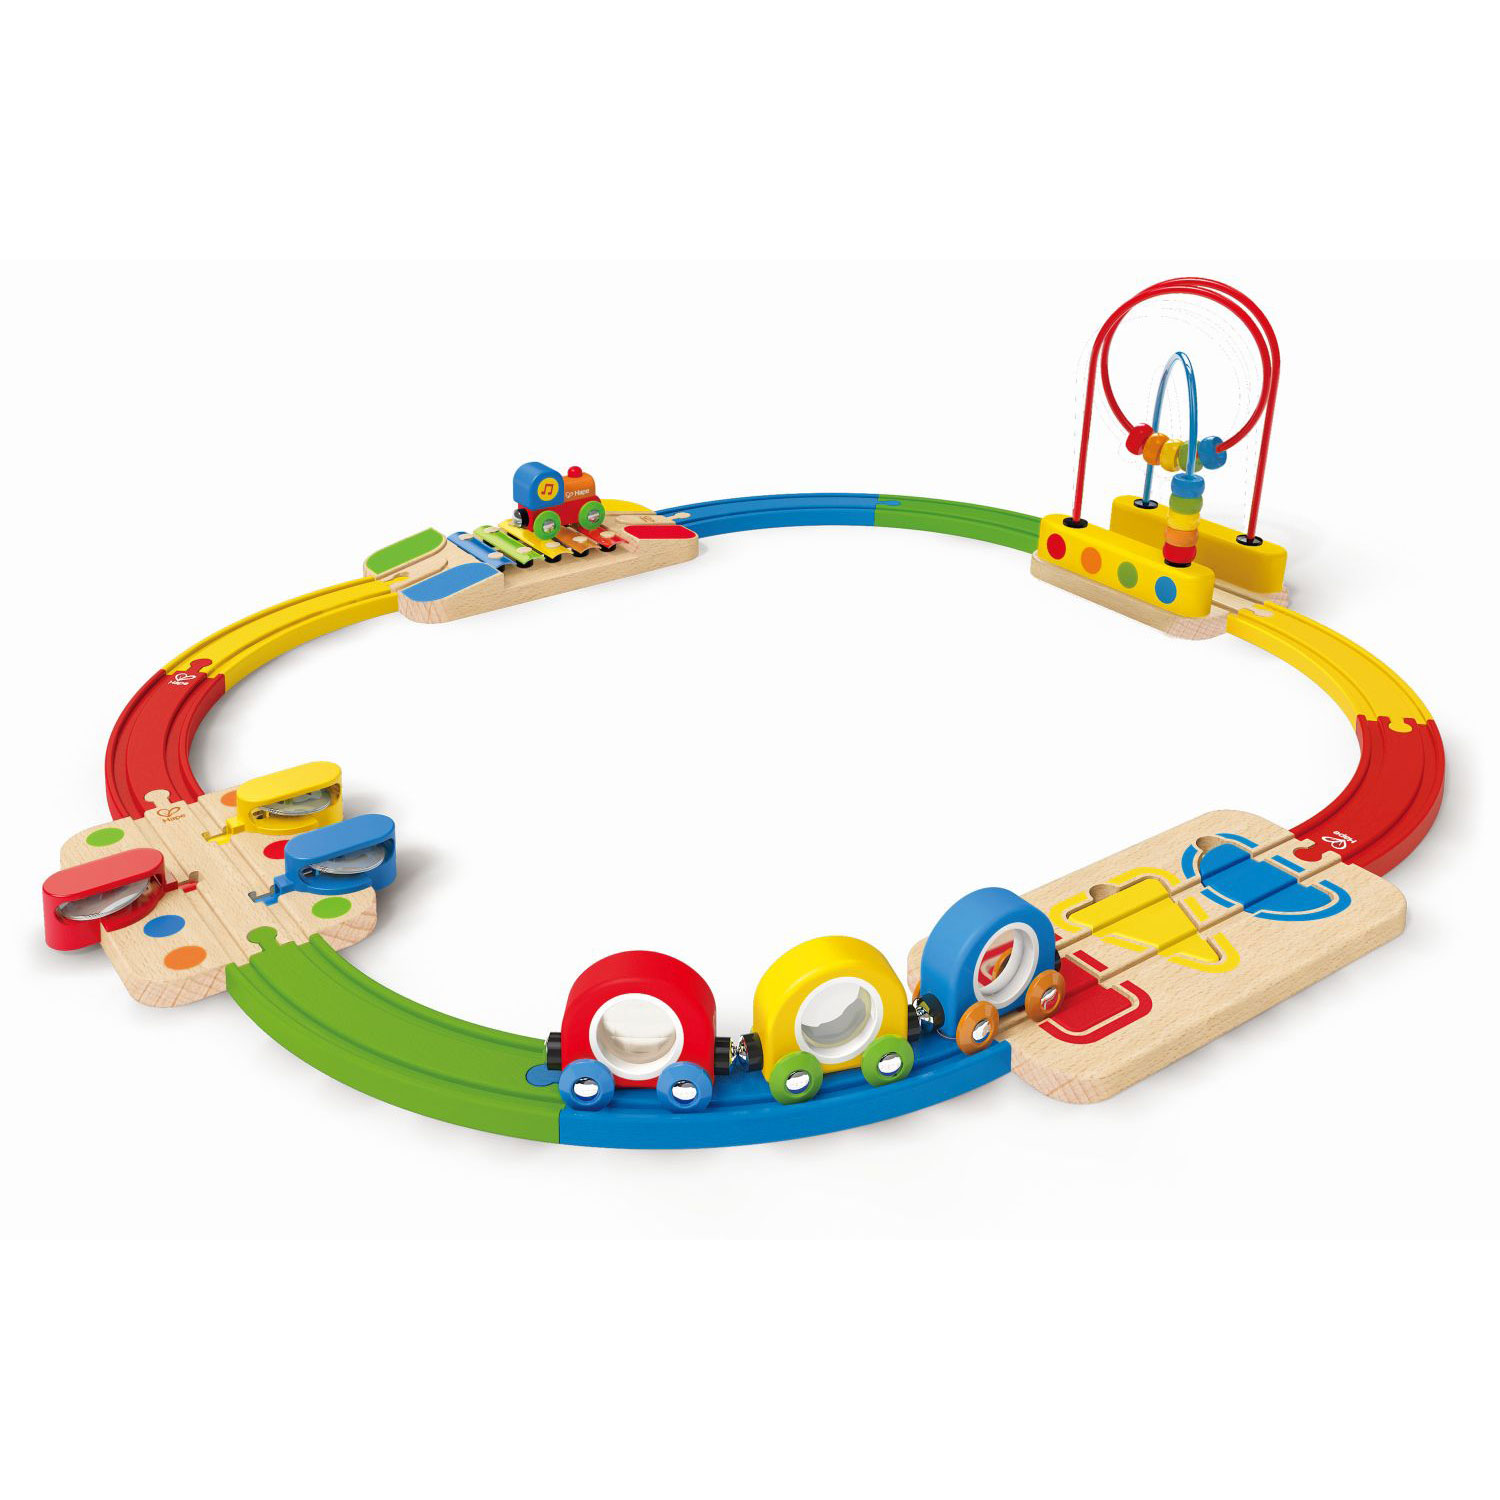 Hape E8124 Musical Rainbow Railway Kids Toy Wooden Train Play Set with Track